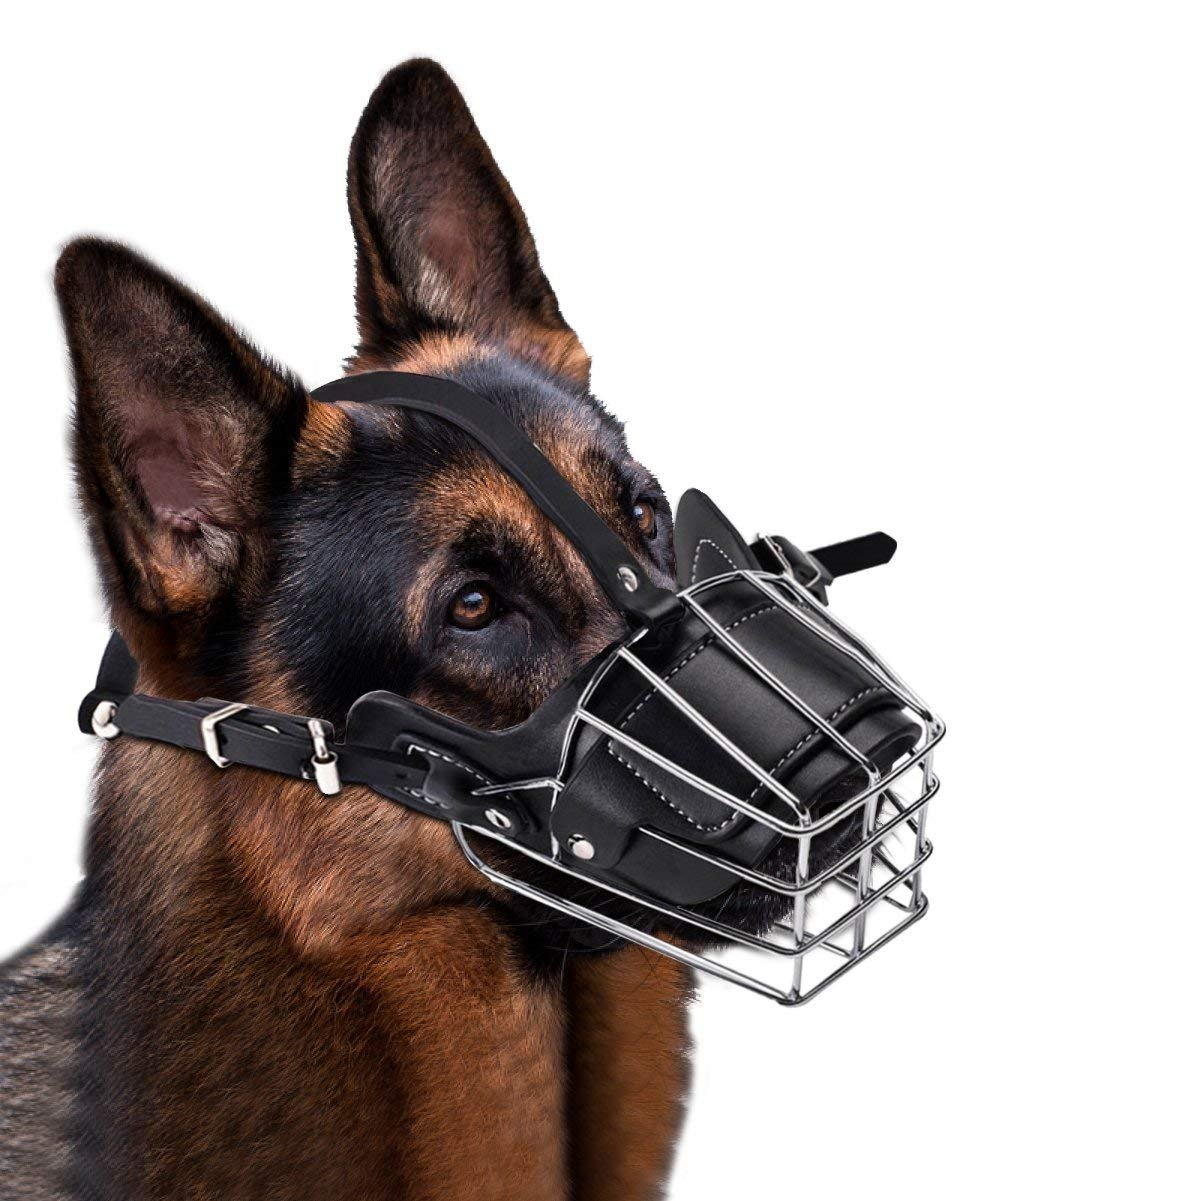 Lmlly Dog Muzzle, Adjustable Metal Mask for Anti-Bite Wire Leather Strong Basket Breathable Safety Protection Cover for Medium/Large Pets(Black,L)